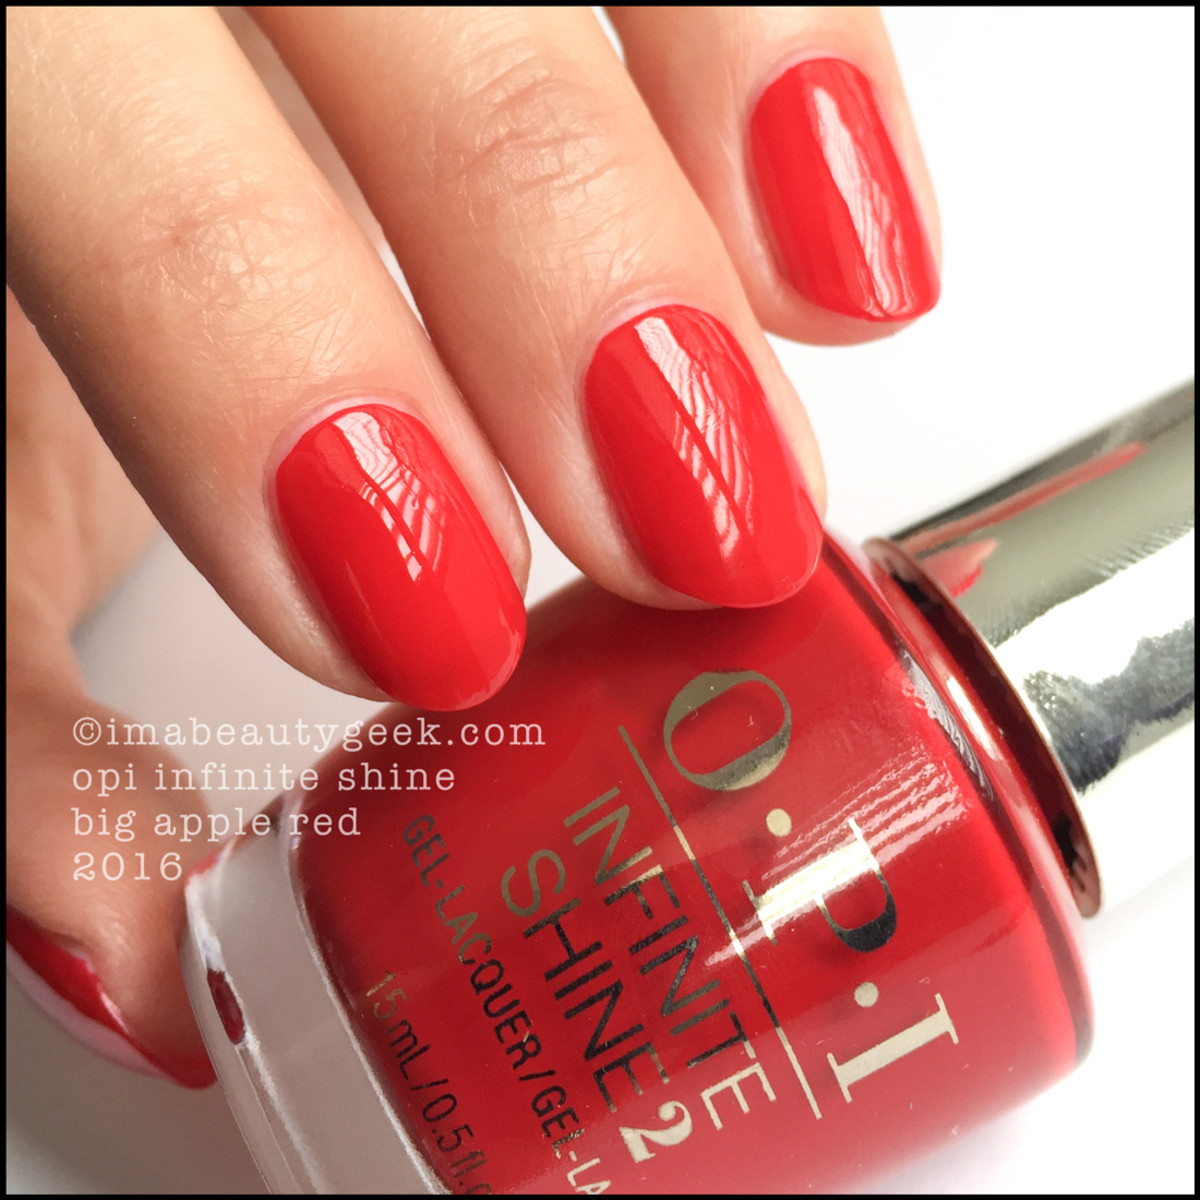 OPI Infinite Shine Big Apple Red_OPI Infinite Shine Iconic Collection 2016